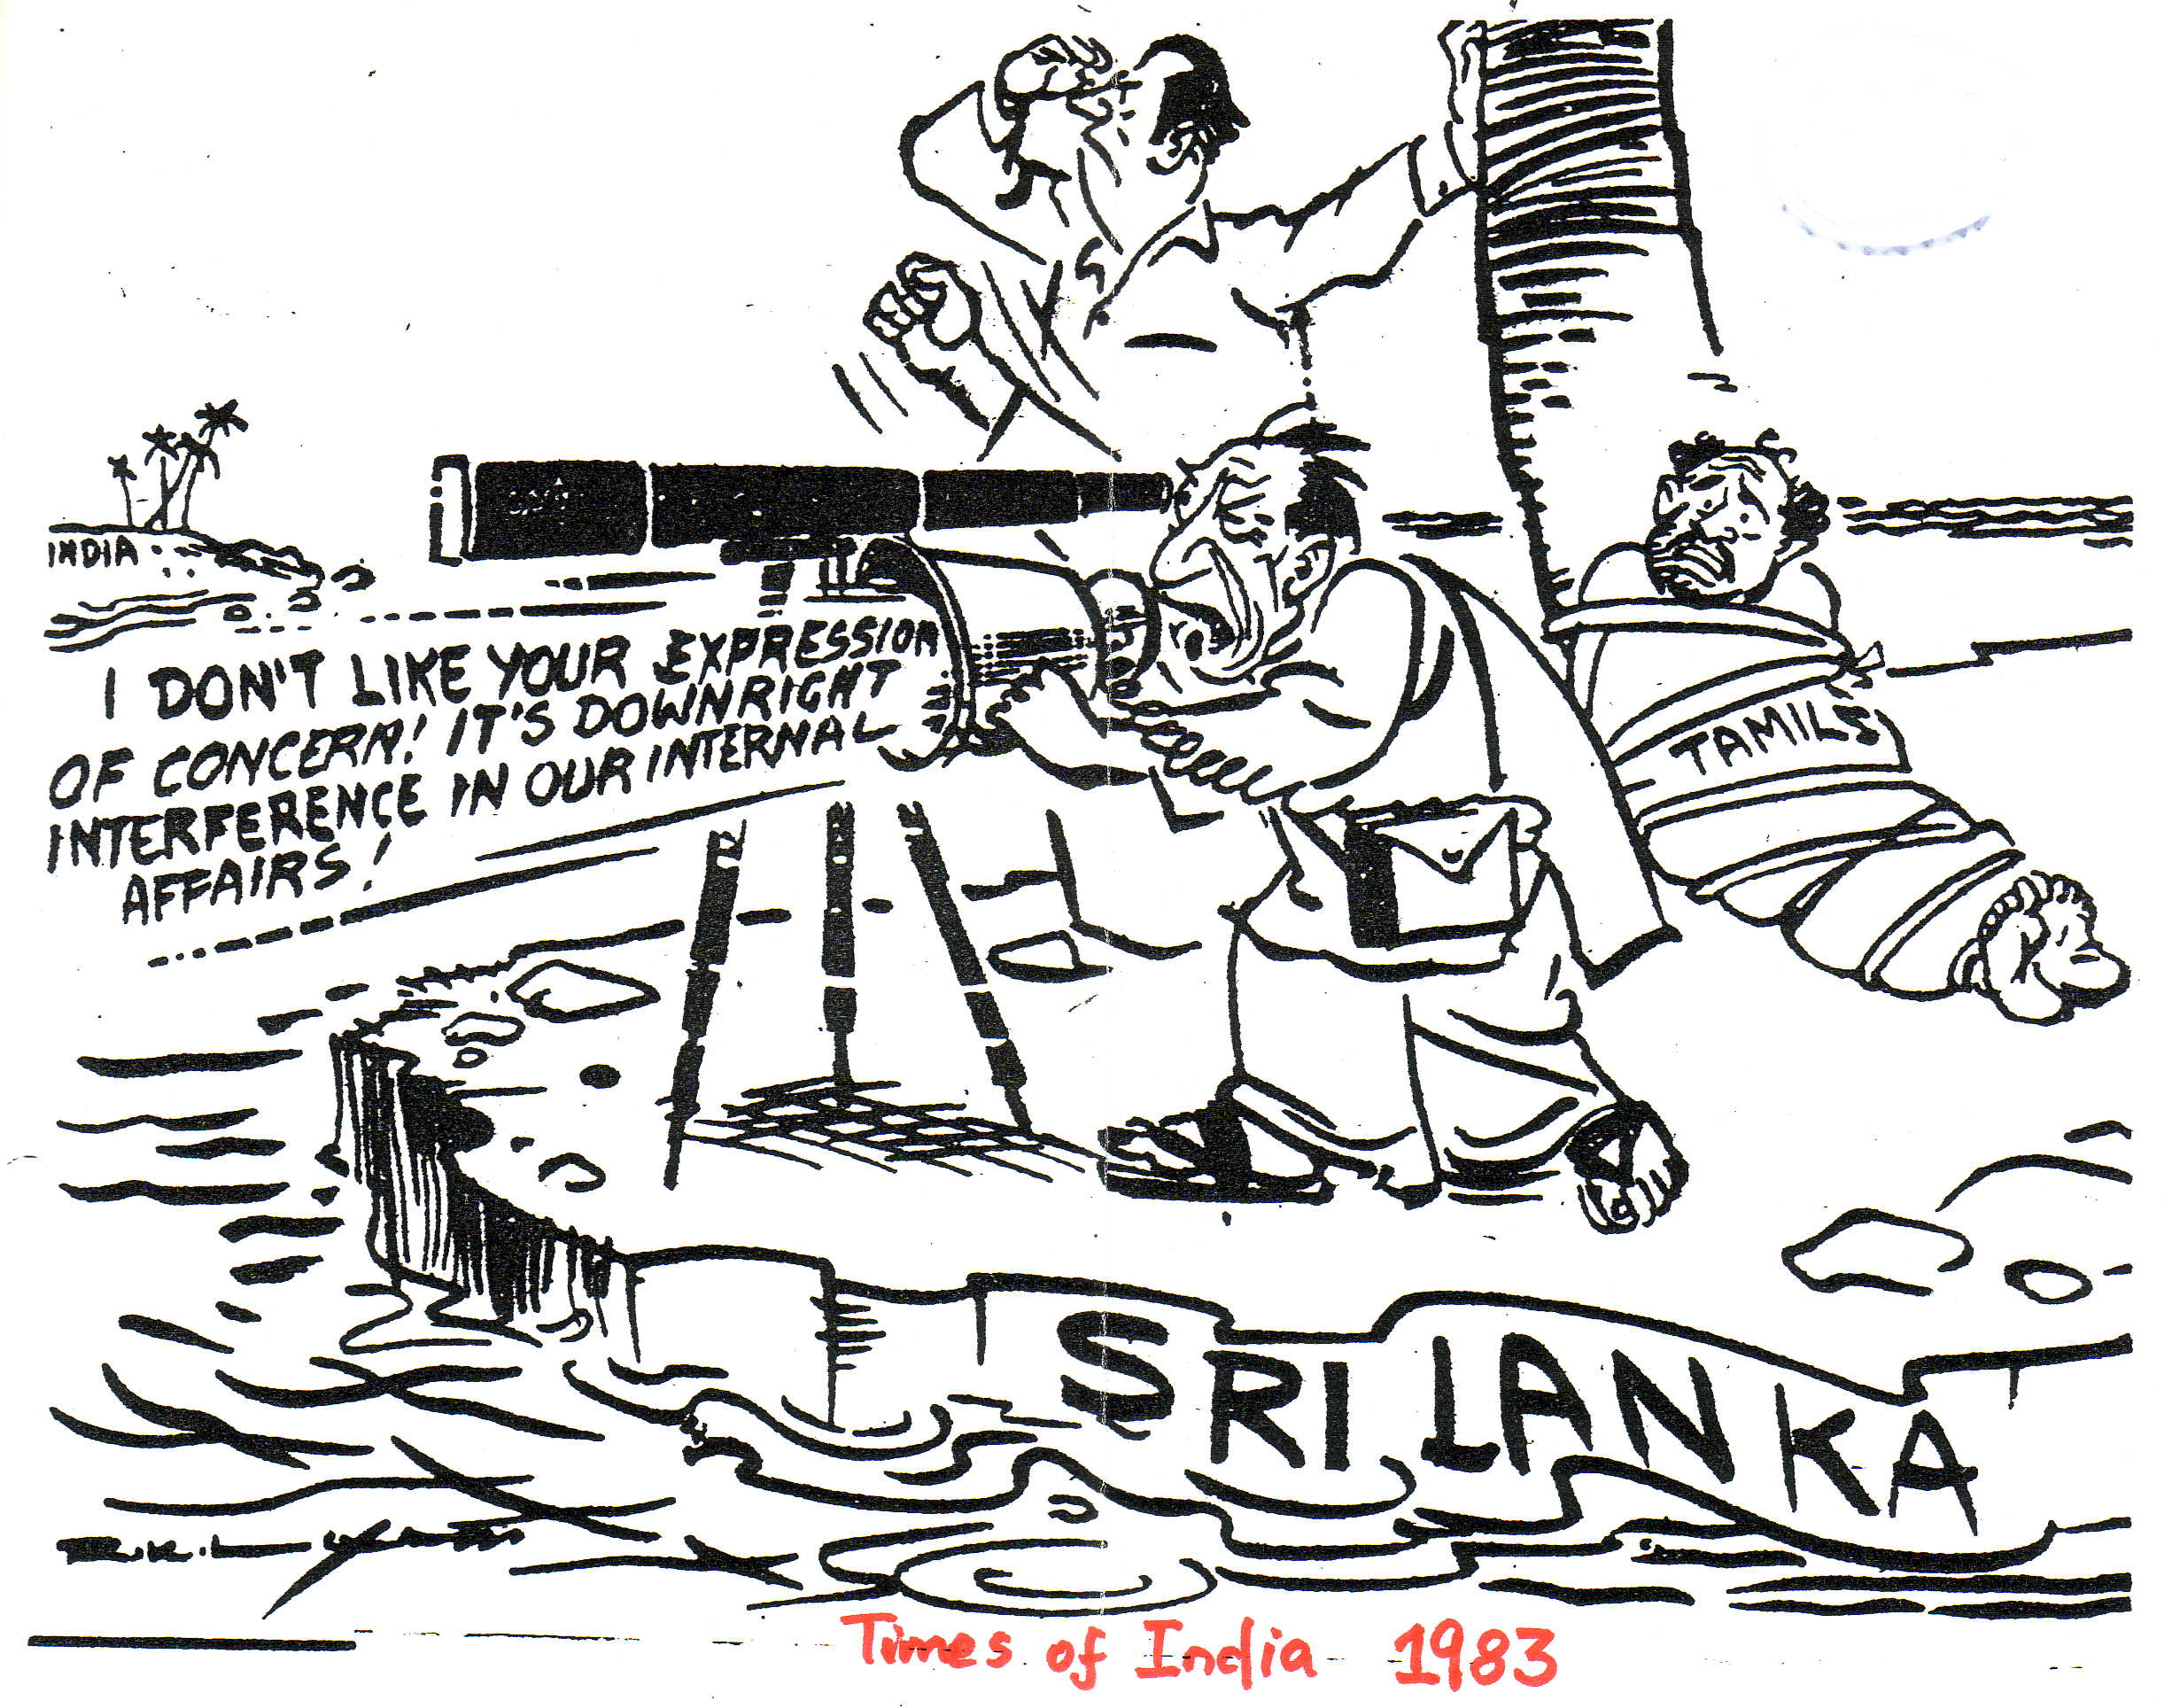 RK Laxman cartoon 1983 Times of India Sri Lanka